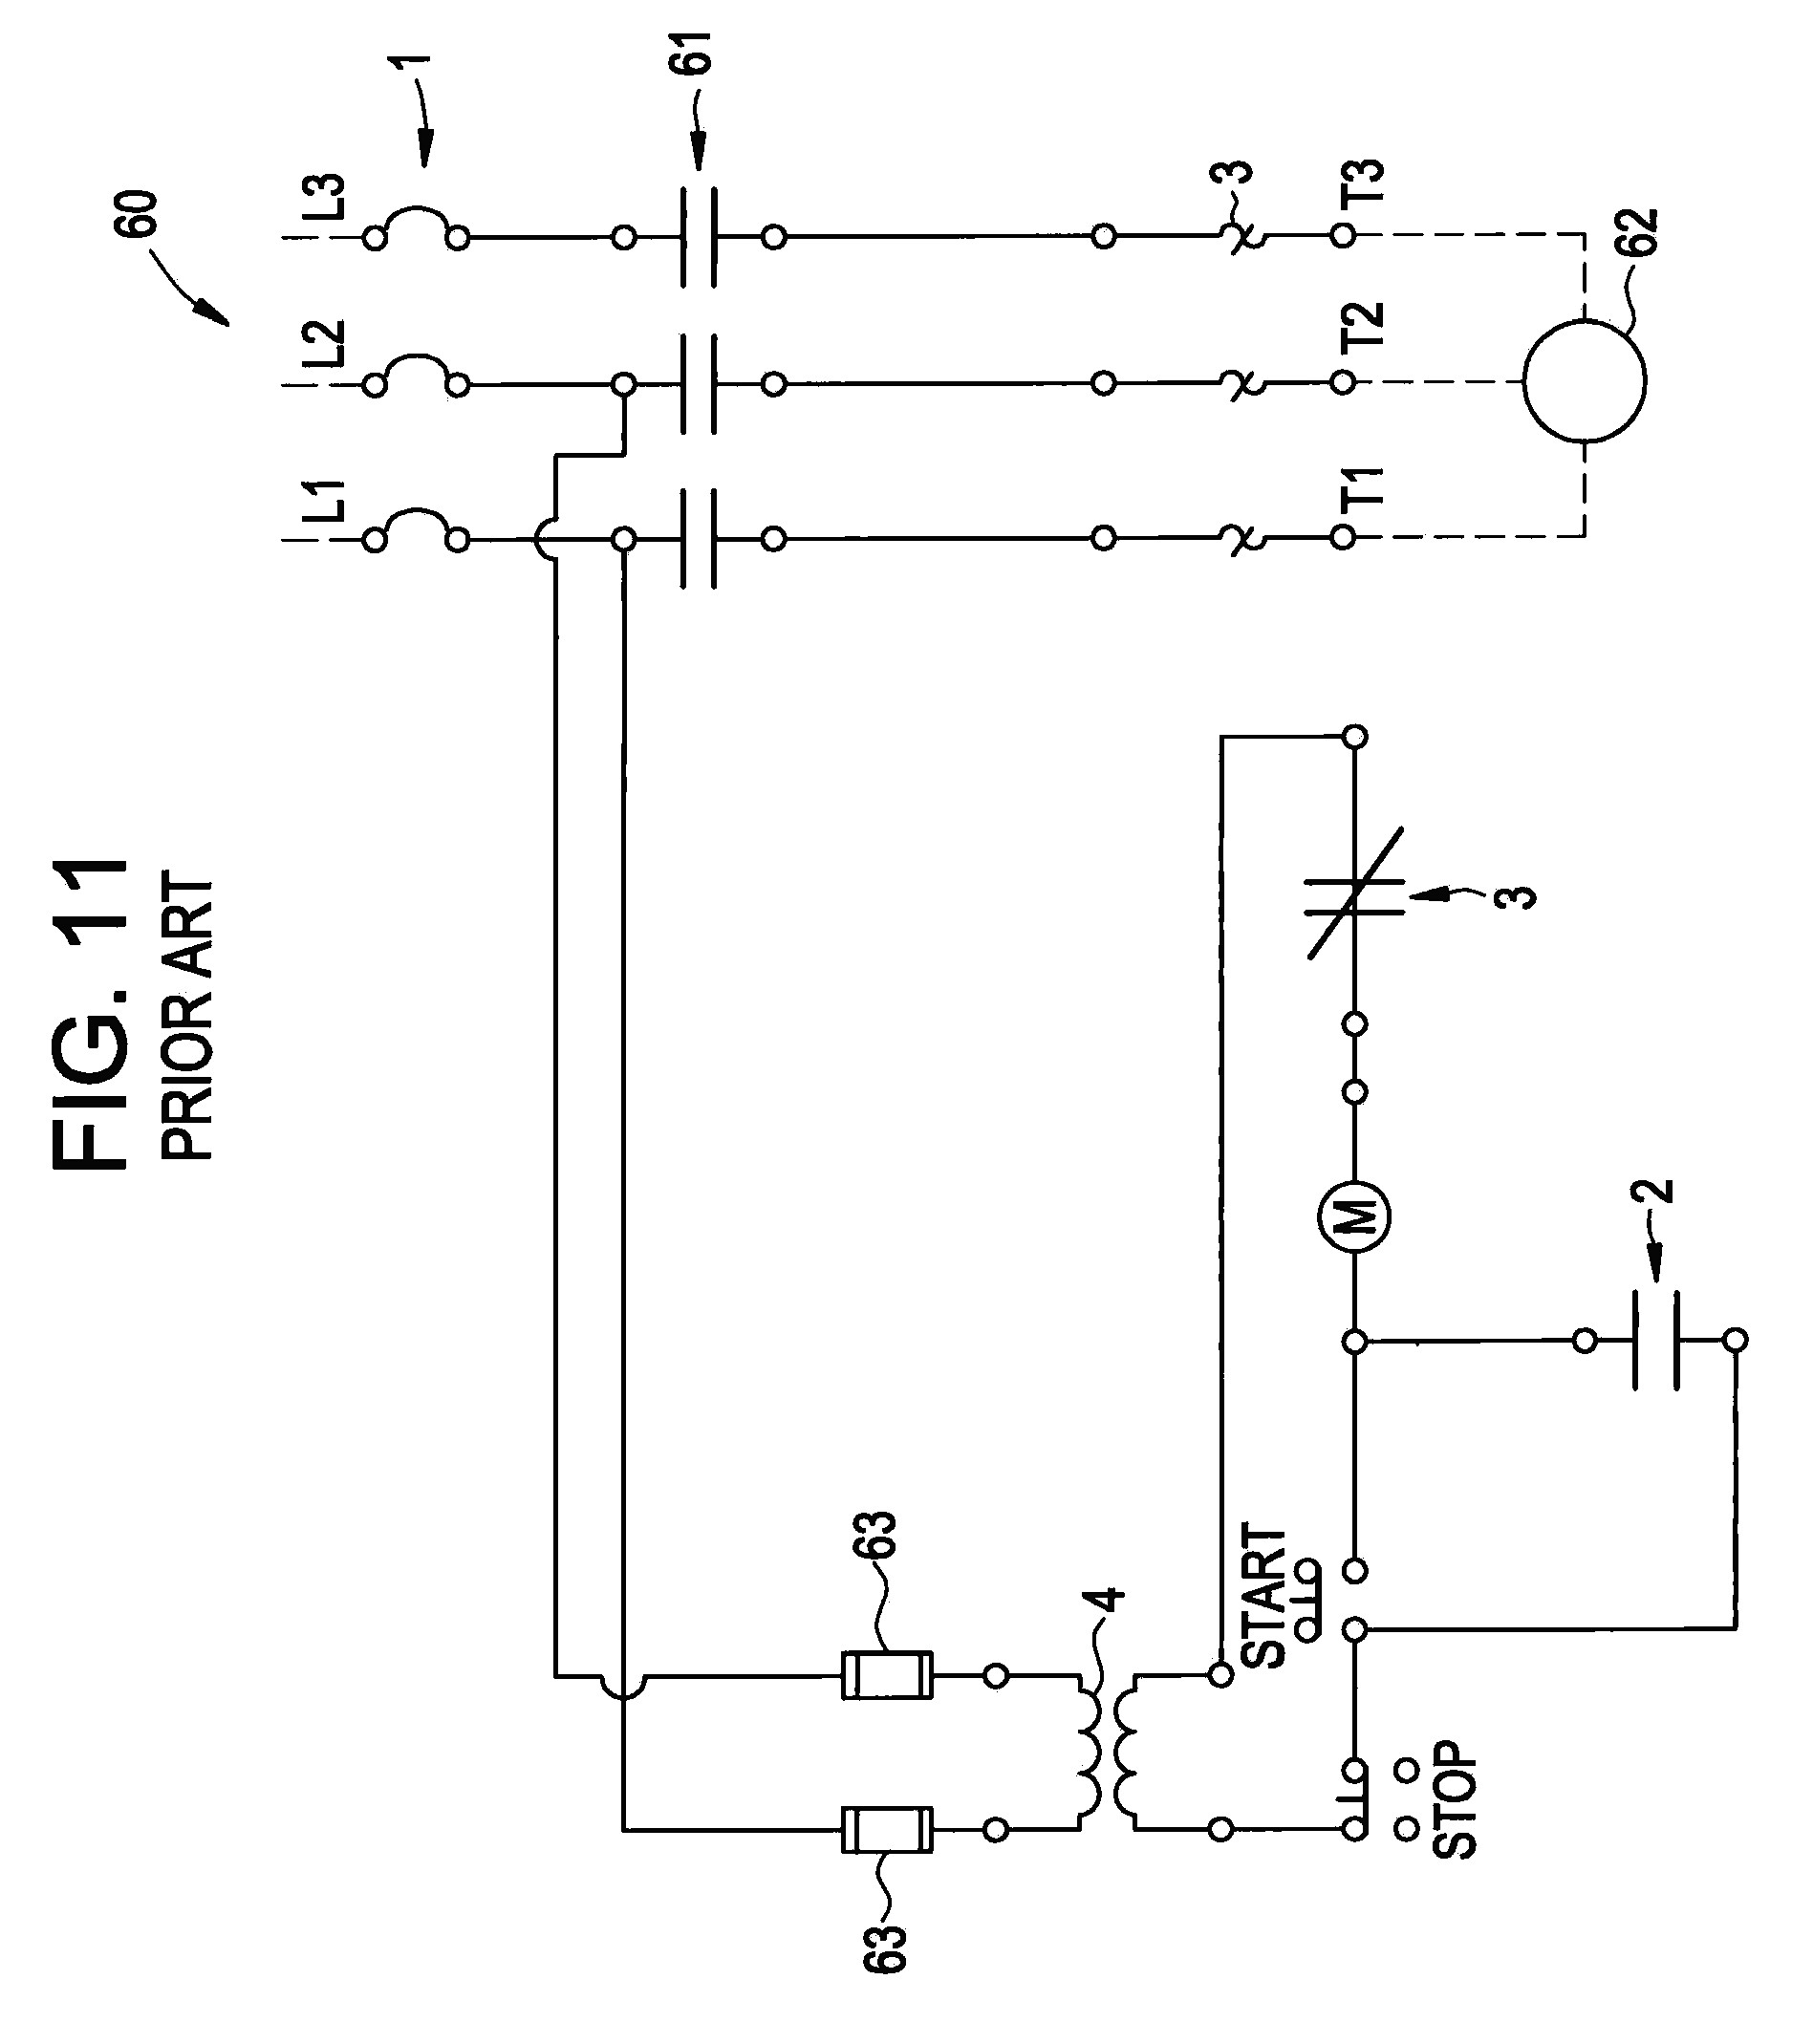 Cutler Hammer Motor Starter Wiring Diagram Download 11 Pin Latching Relay Collection Reversible New